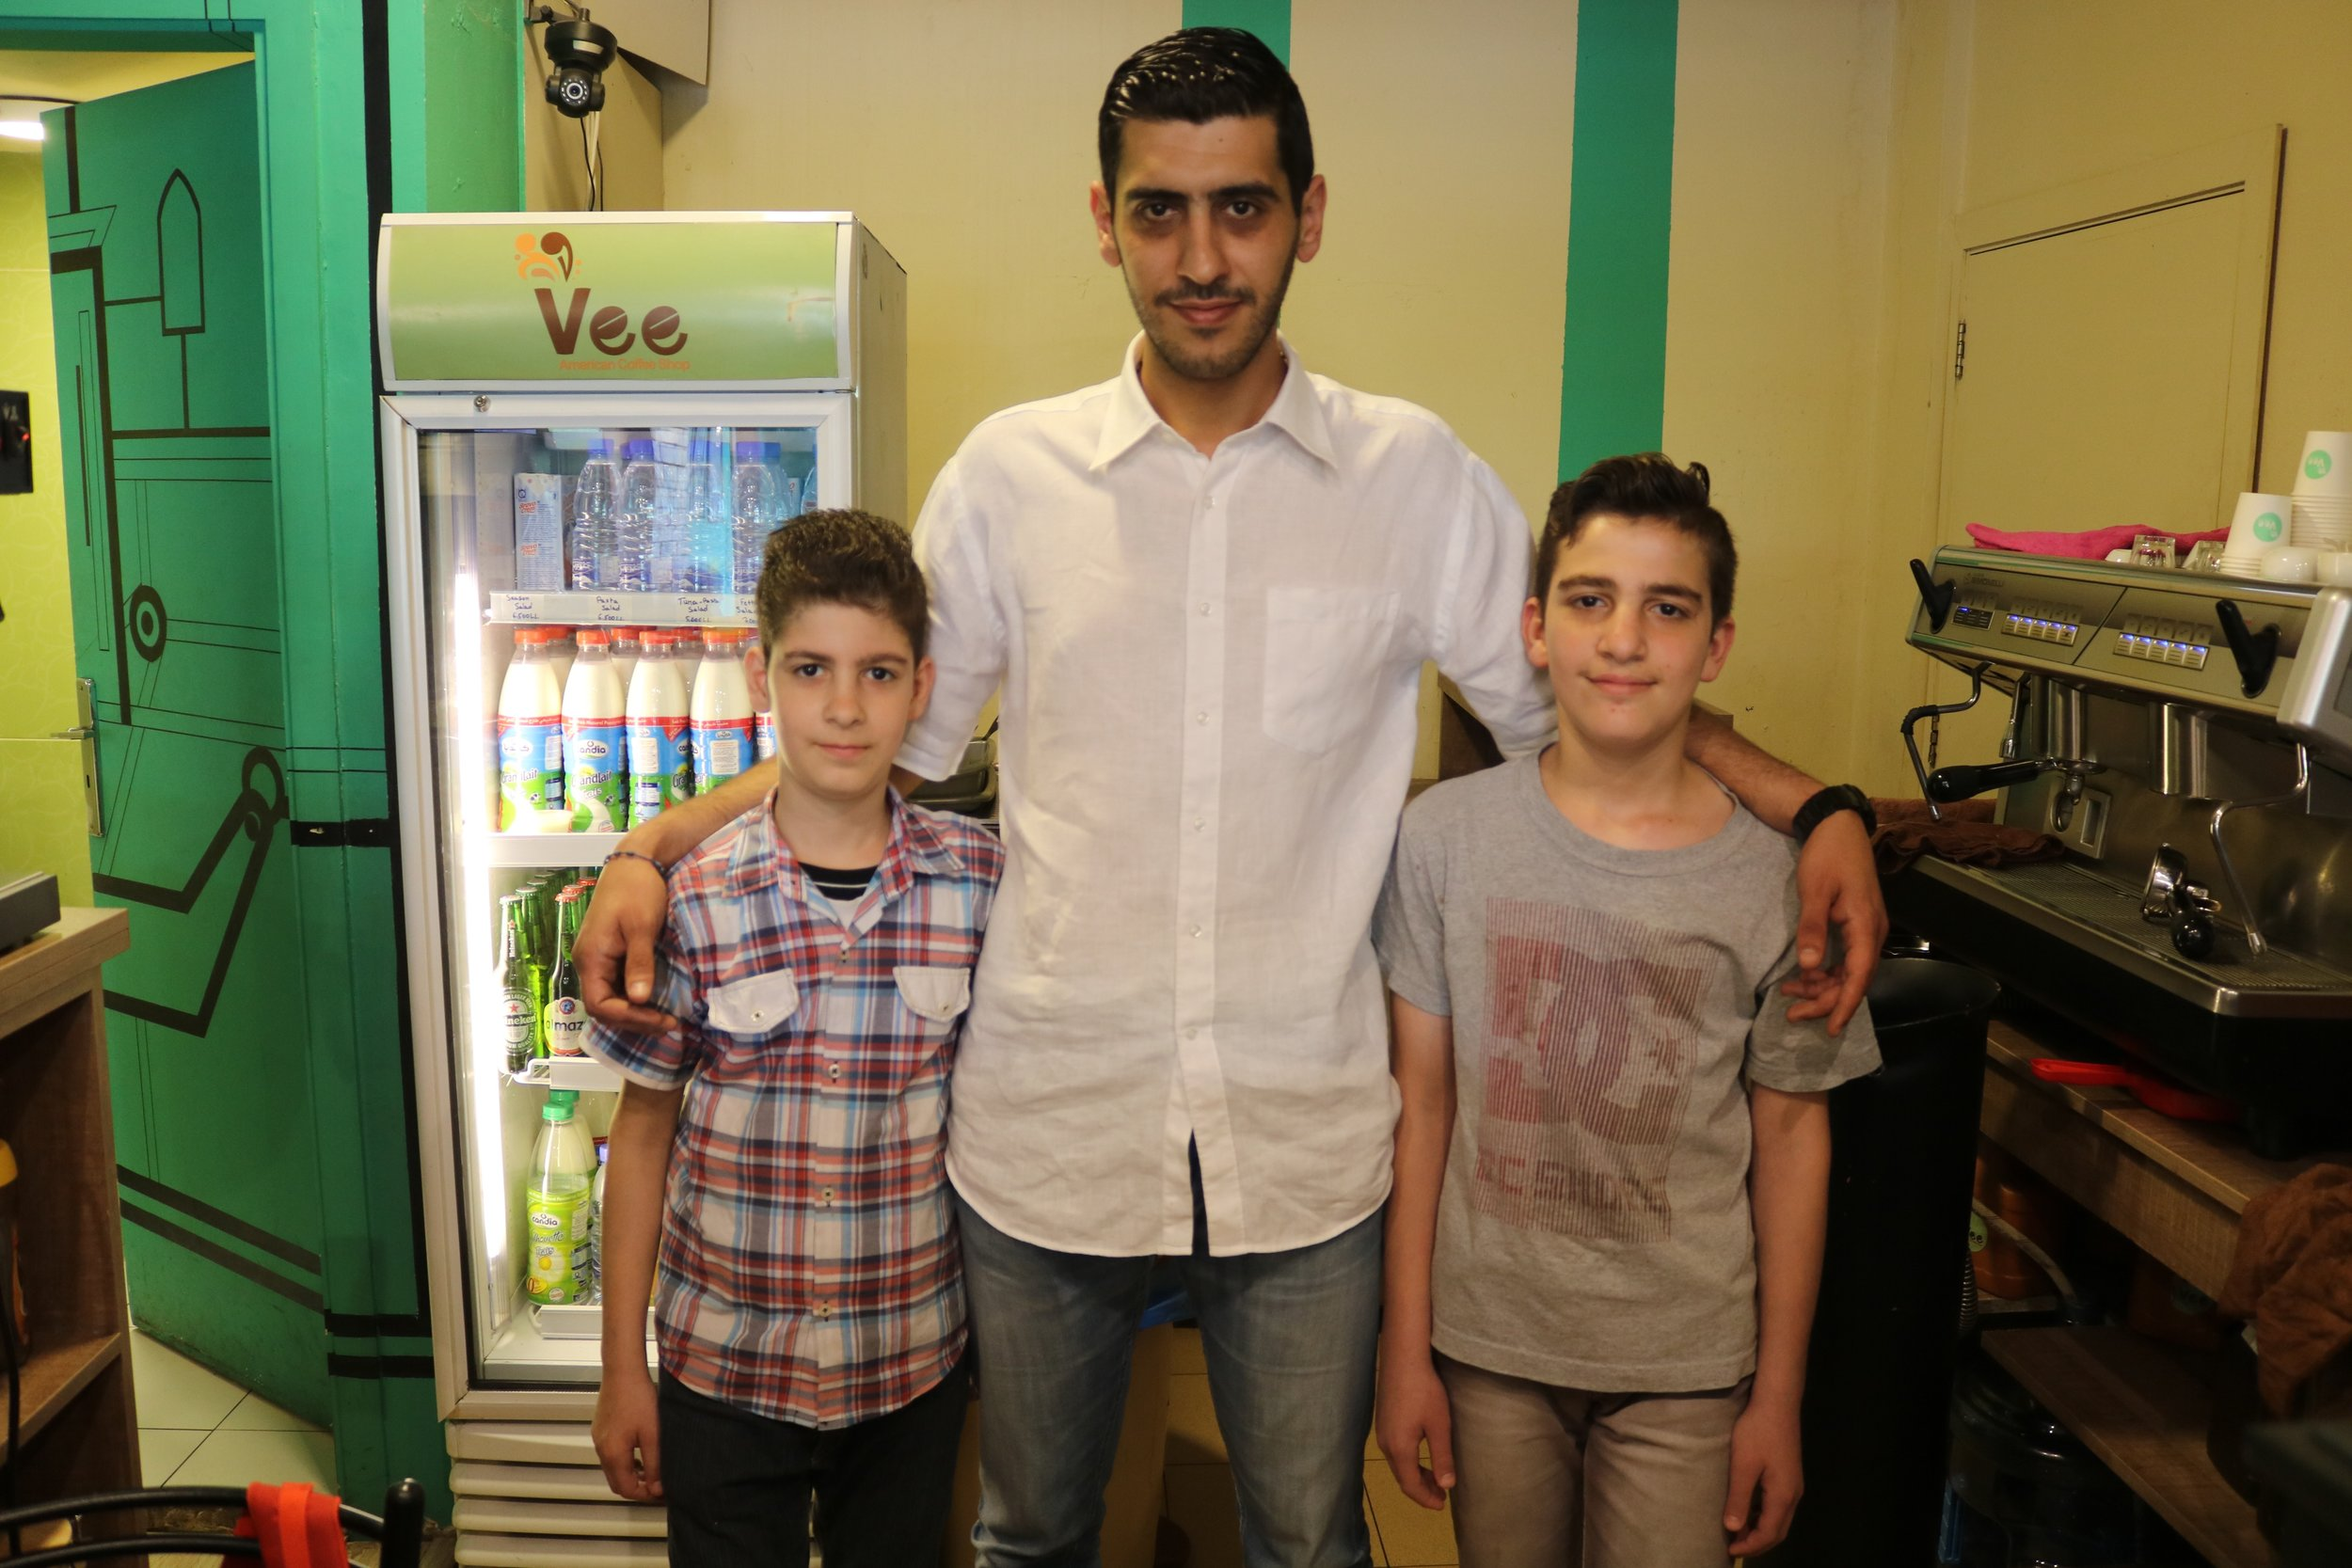 Fadi (left) and Farah (right) work at a cafe in northern Lebanon. Their boss, Samir (middle), hired them to get the boys to talk again. They've been quiet since witnessing ISIS kidnap their sister and shoot their mother.